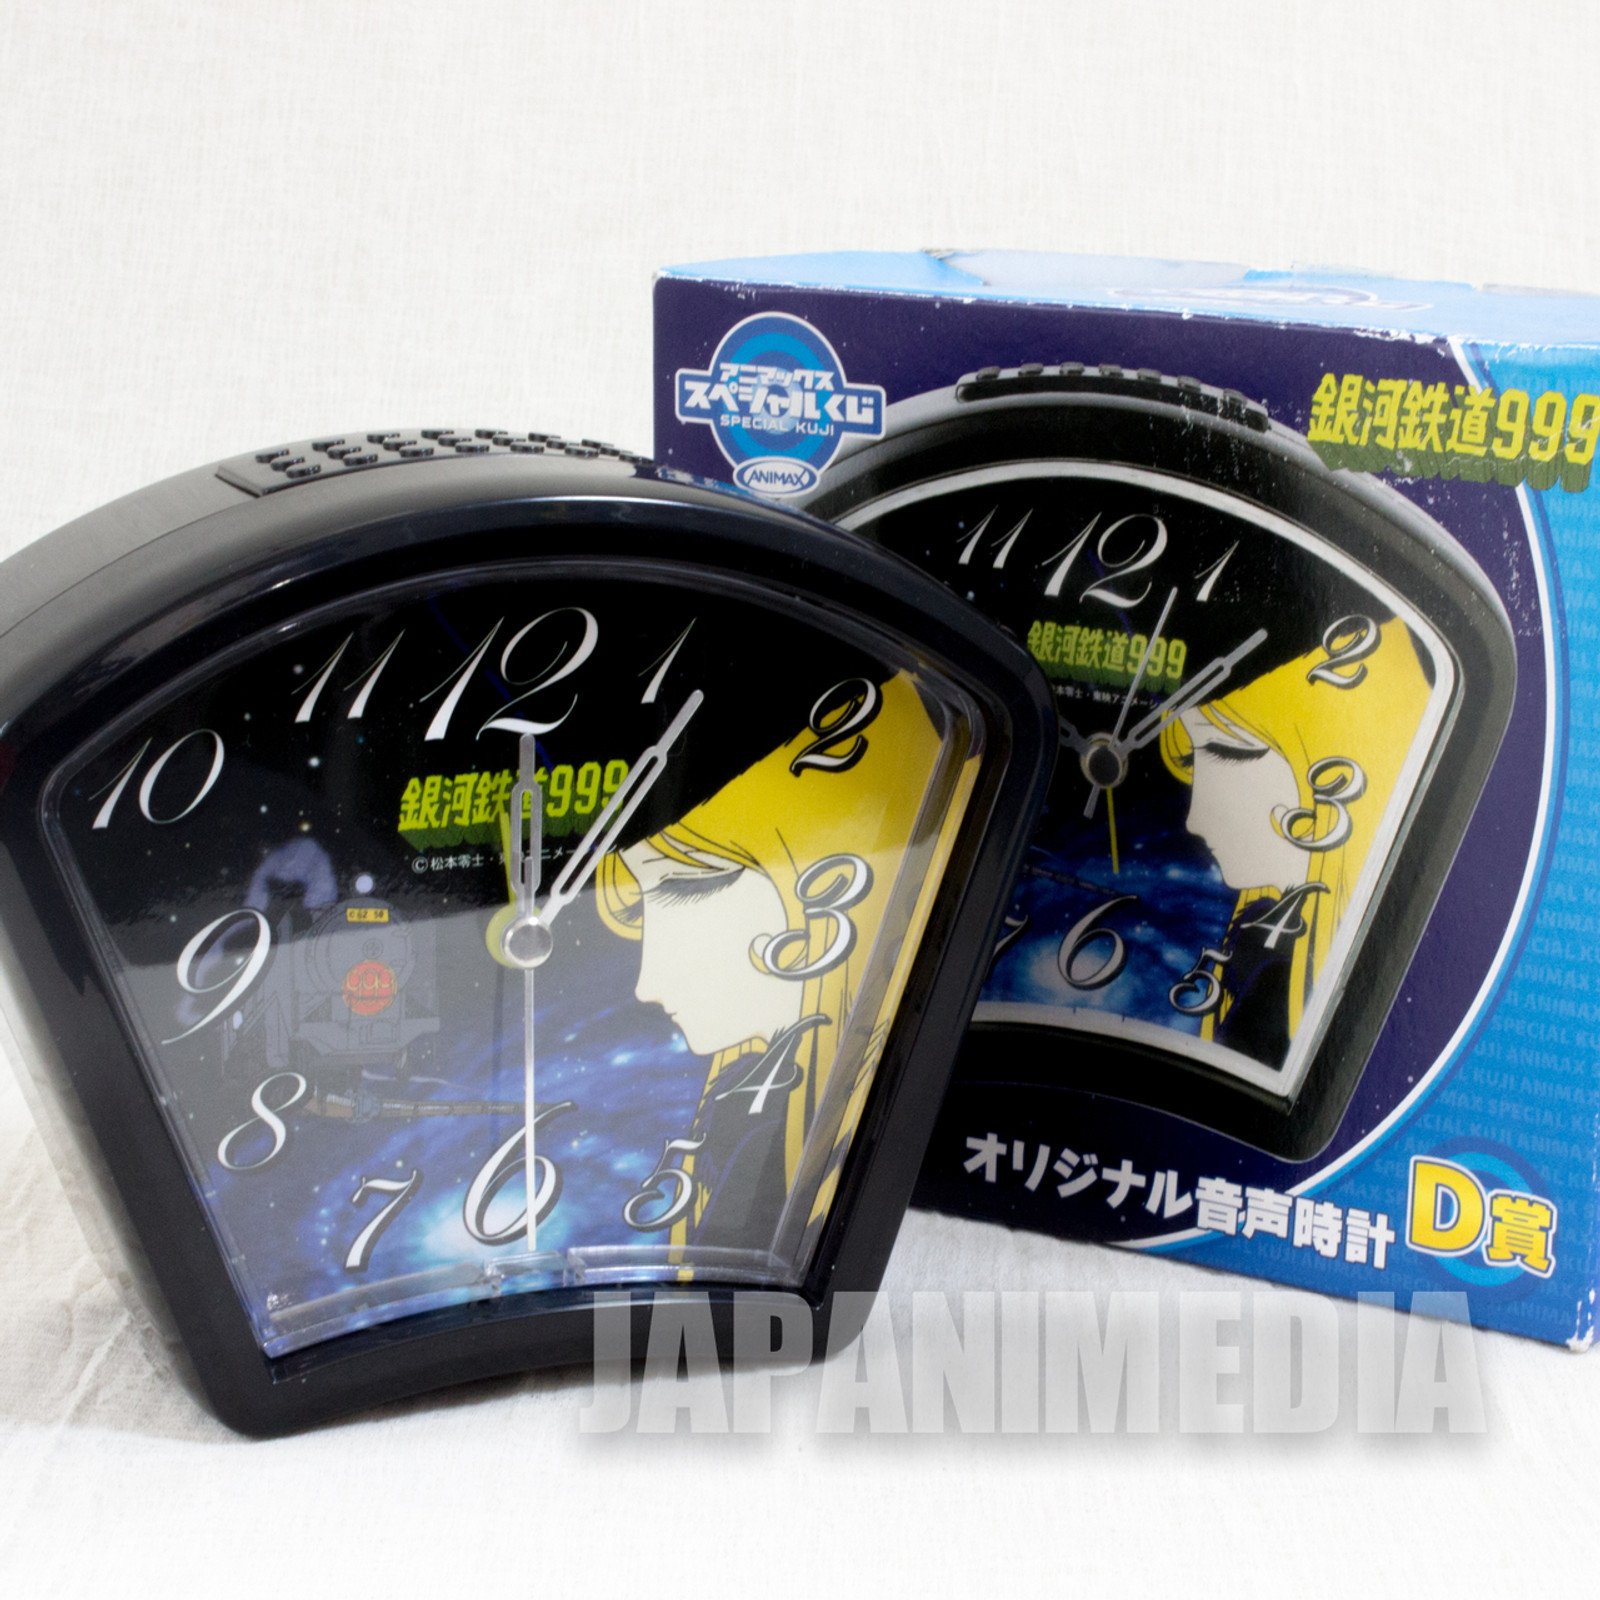 RARE!! Galaxy Express 999 Maetel Legend Voice Alarm Clock Animax JAPAN ANIME